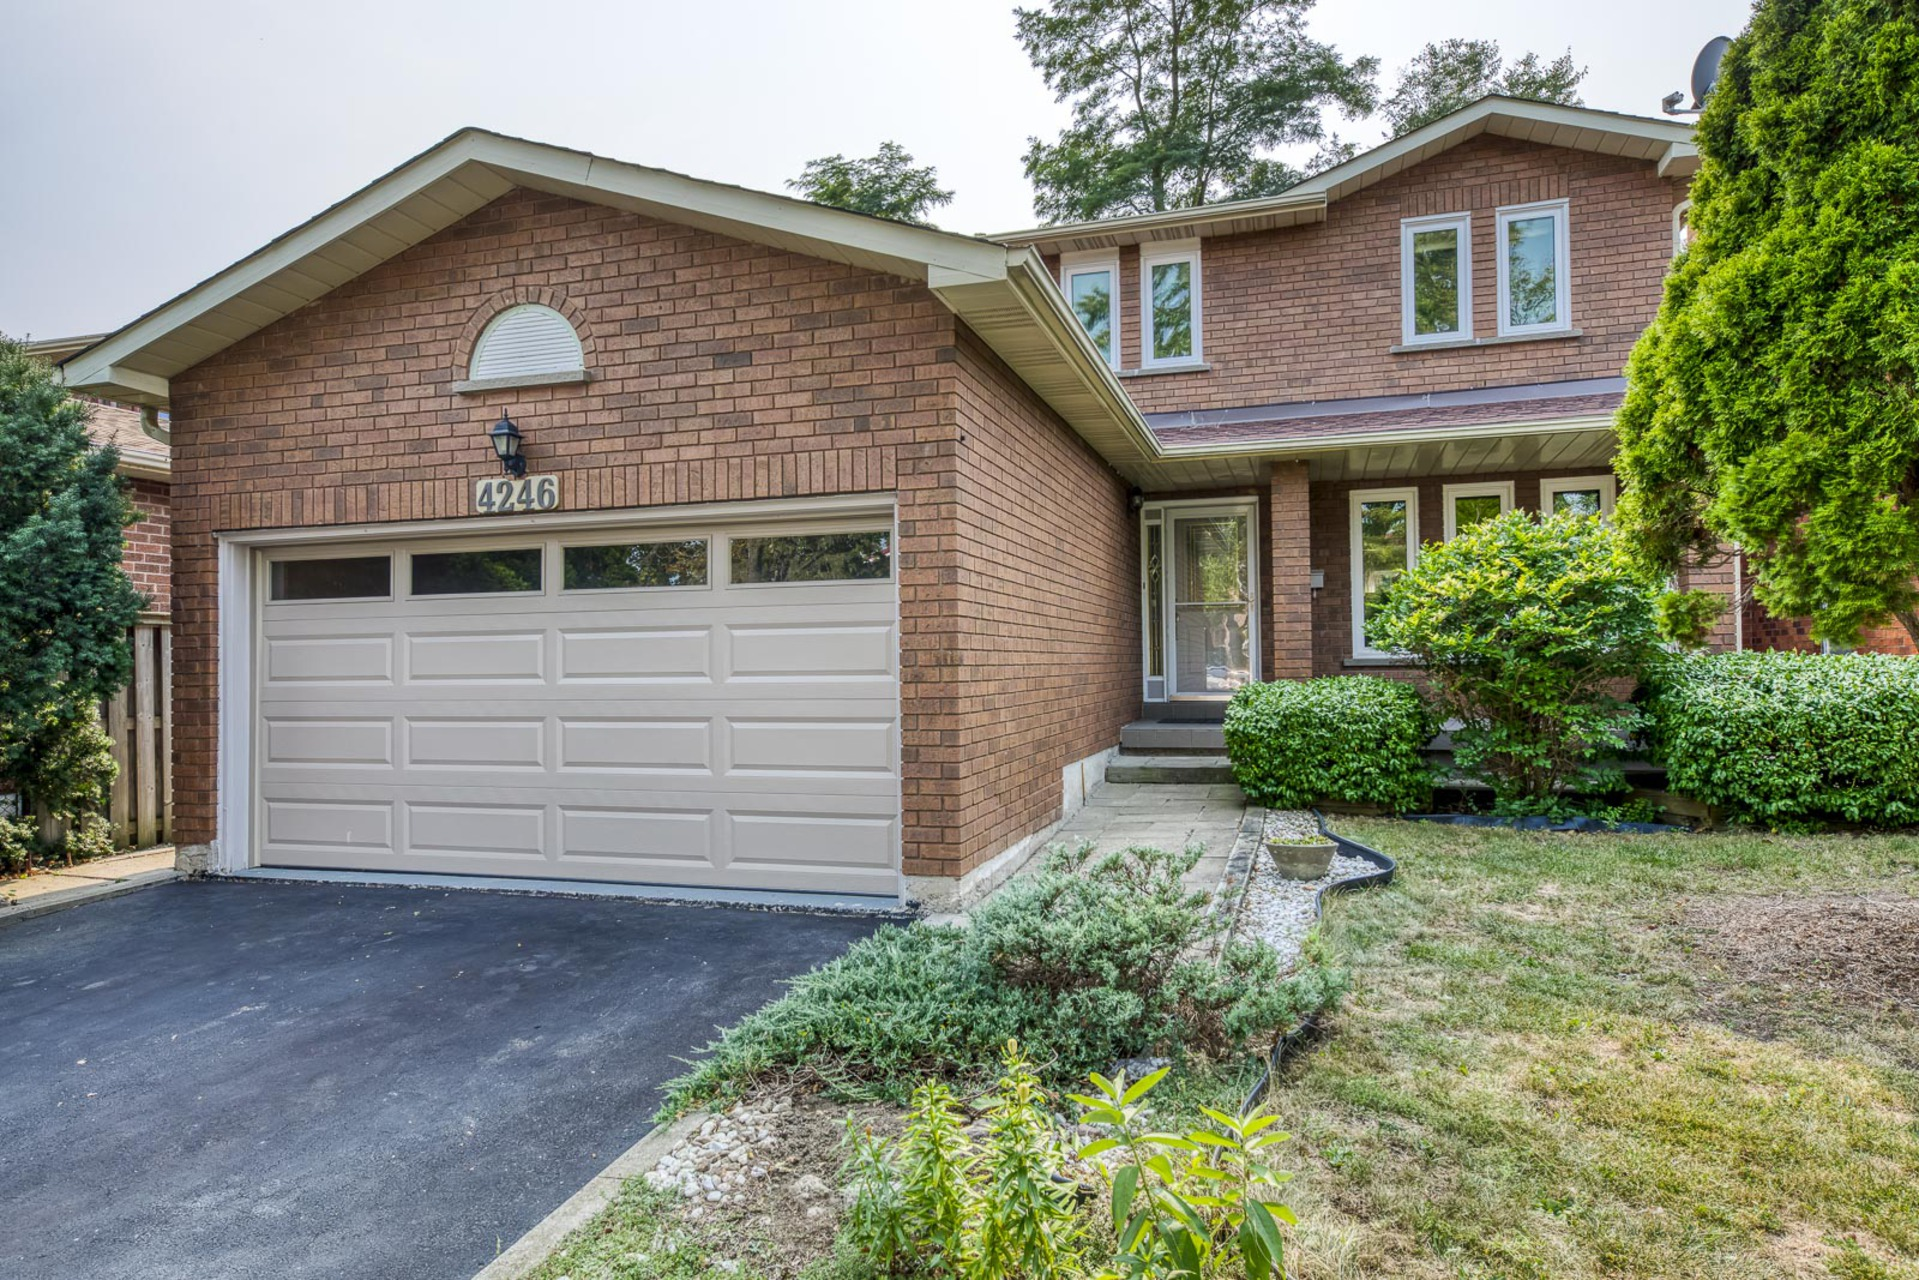 mls-1 at 4246 Wakefield Crescent, Creditview, Mississauga